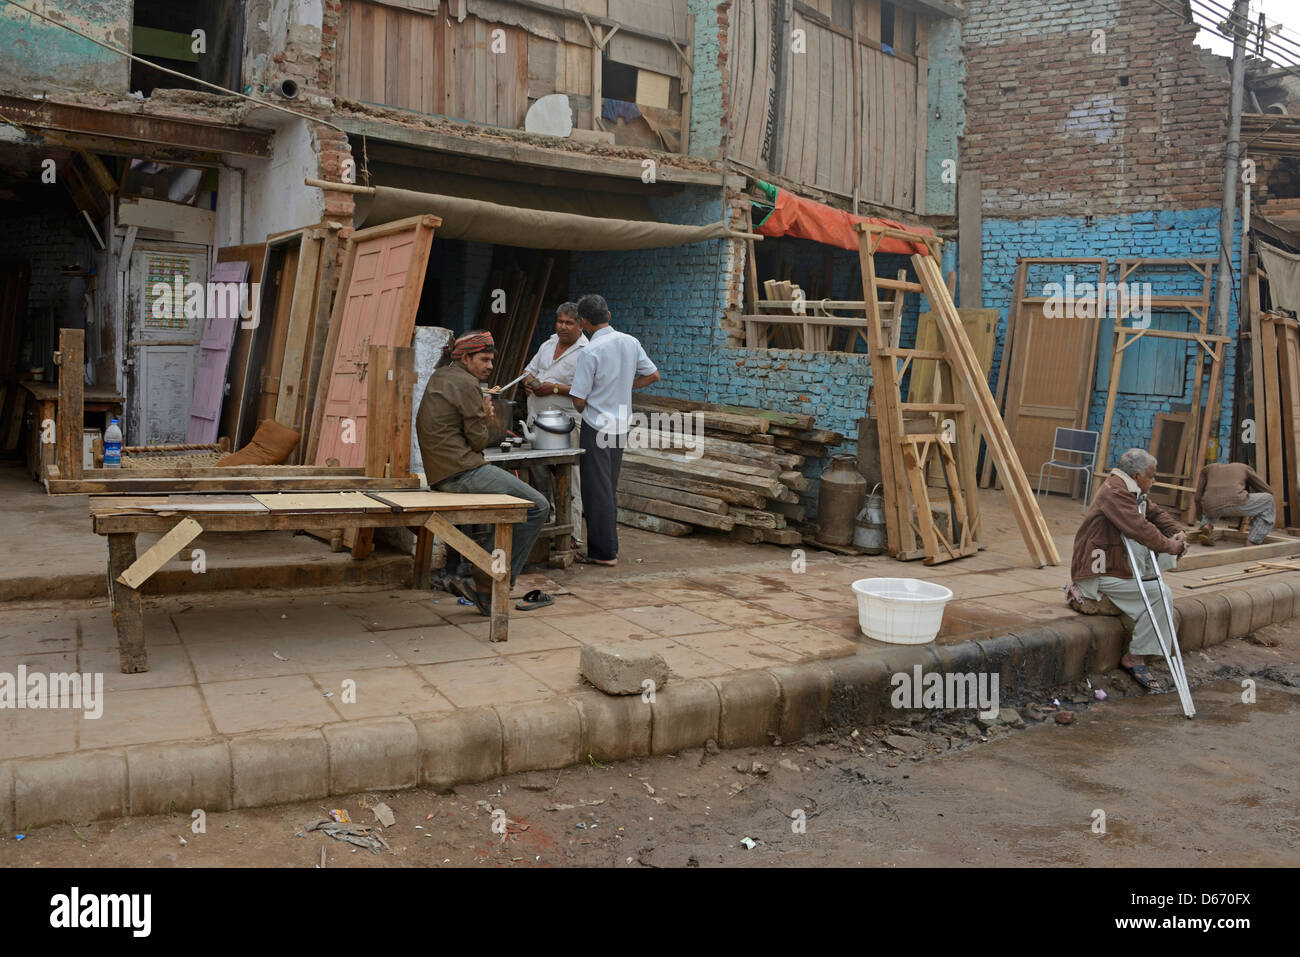 Residents living and working in these unfinished buildings in a slum area of Delhi in India - Stock Image